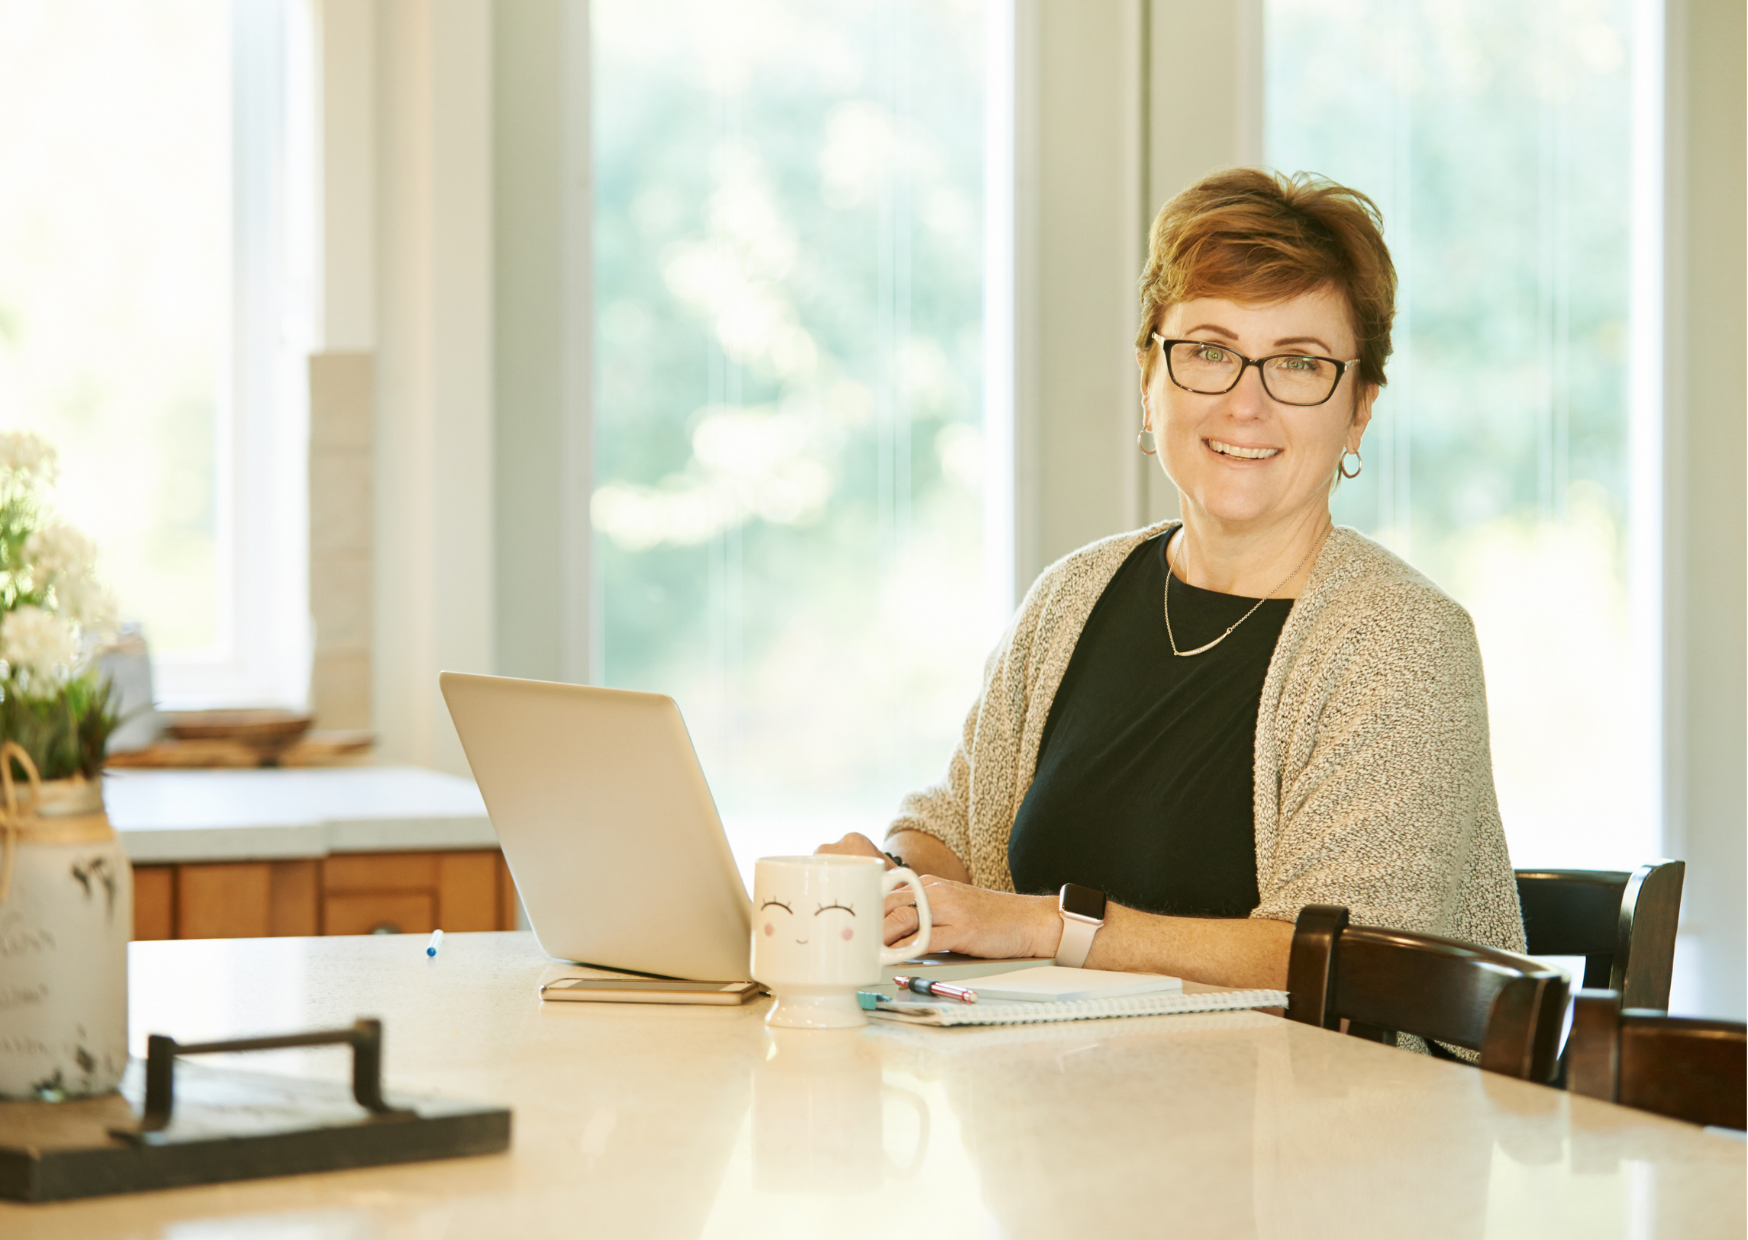 middle-aged woman sitting in front of laptop with cup of coffee, smiling